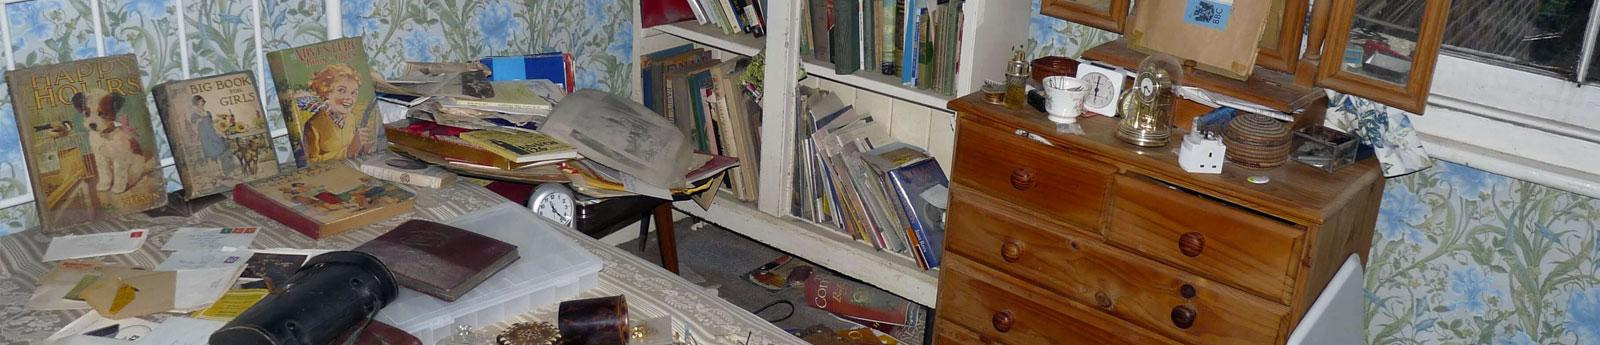 Bereavement House Clearance